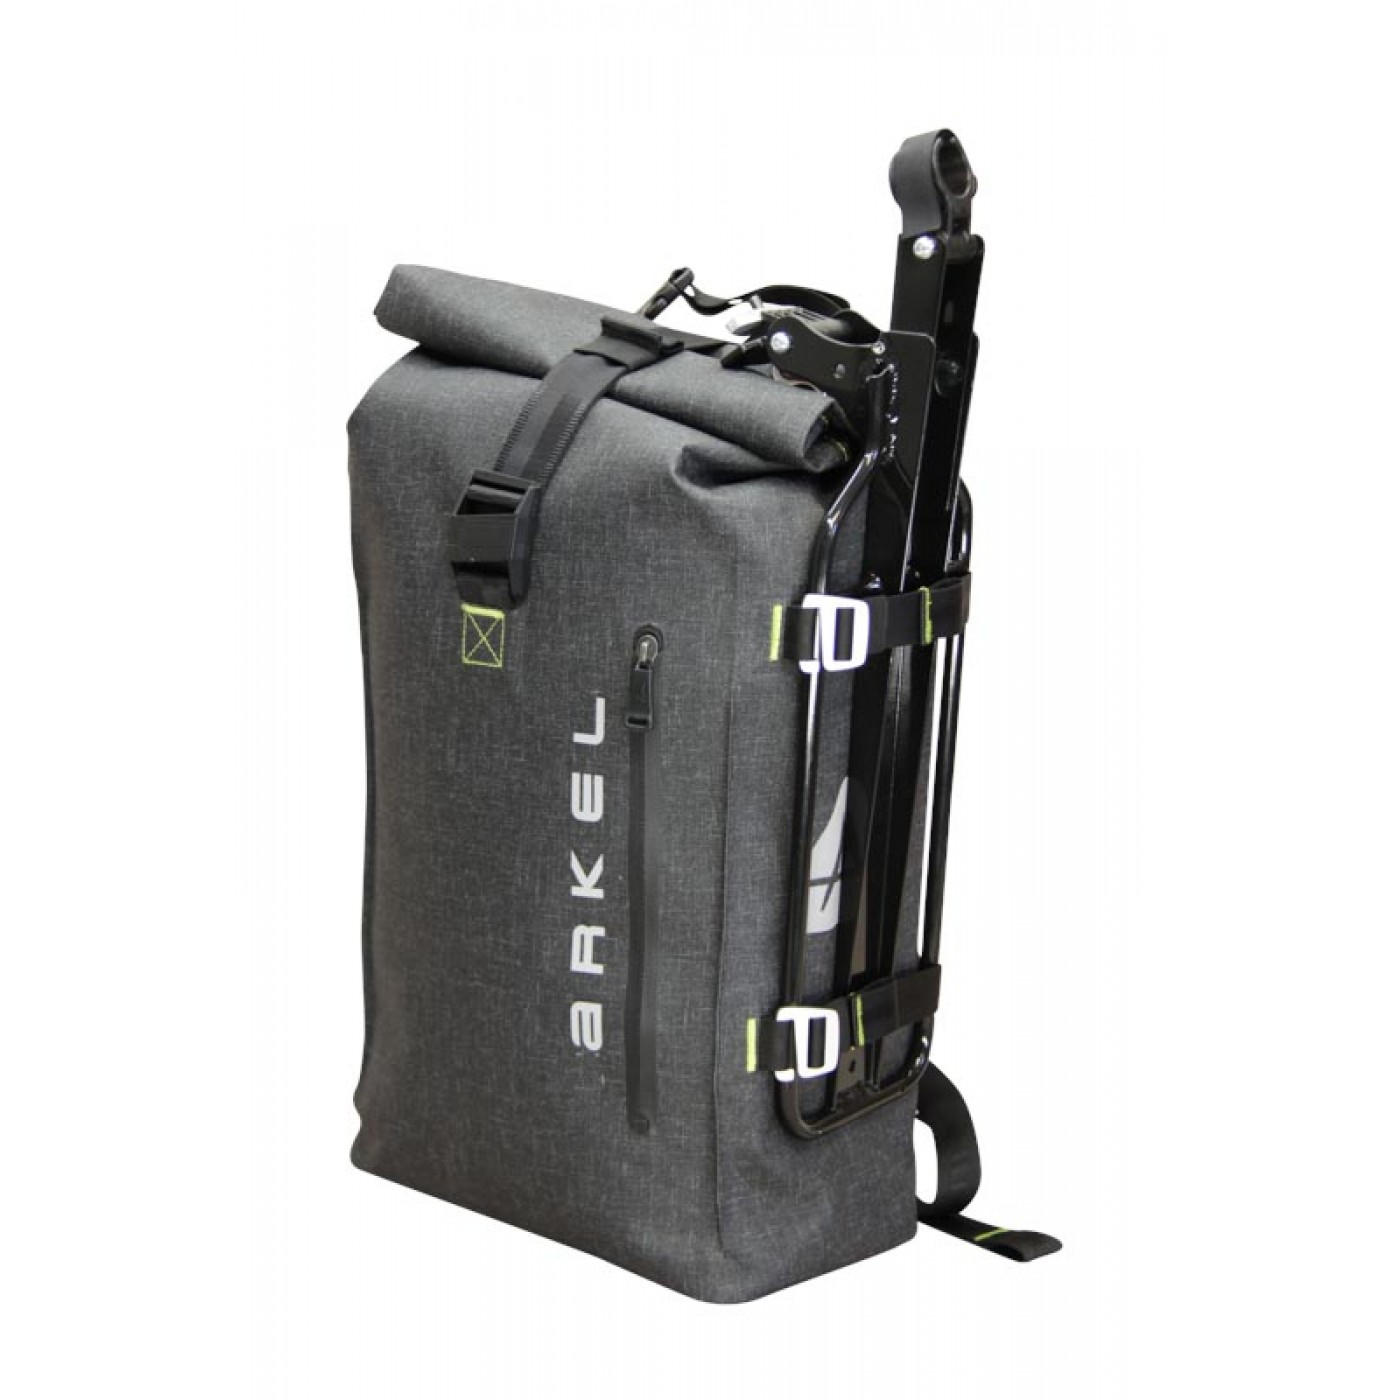 Arkel Drypack cycling backpack with Randonneur Rack® · The Randonneur Rack  can be carried off the bike with the side compression straps 500651d445c60